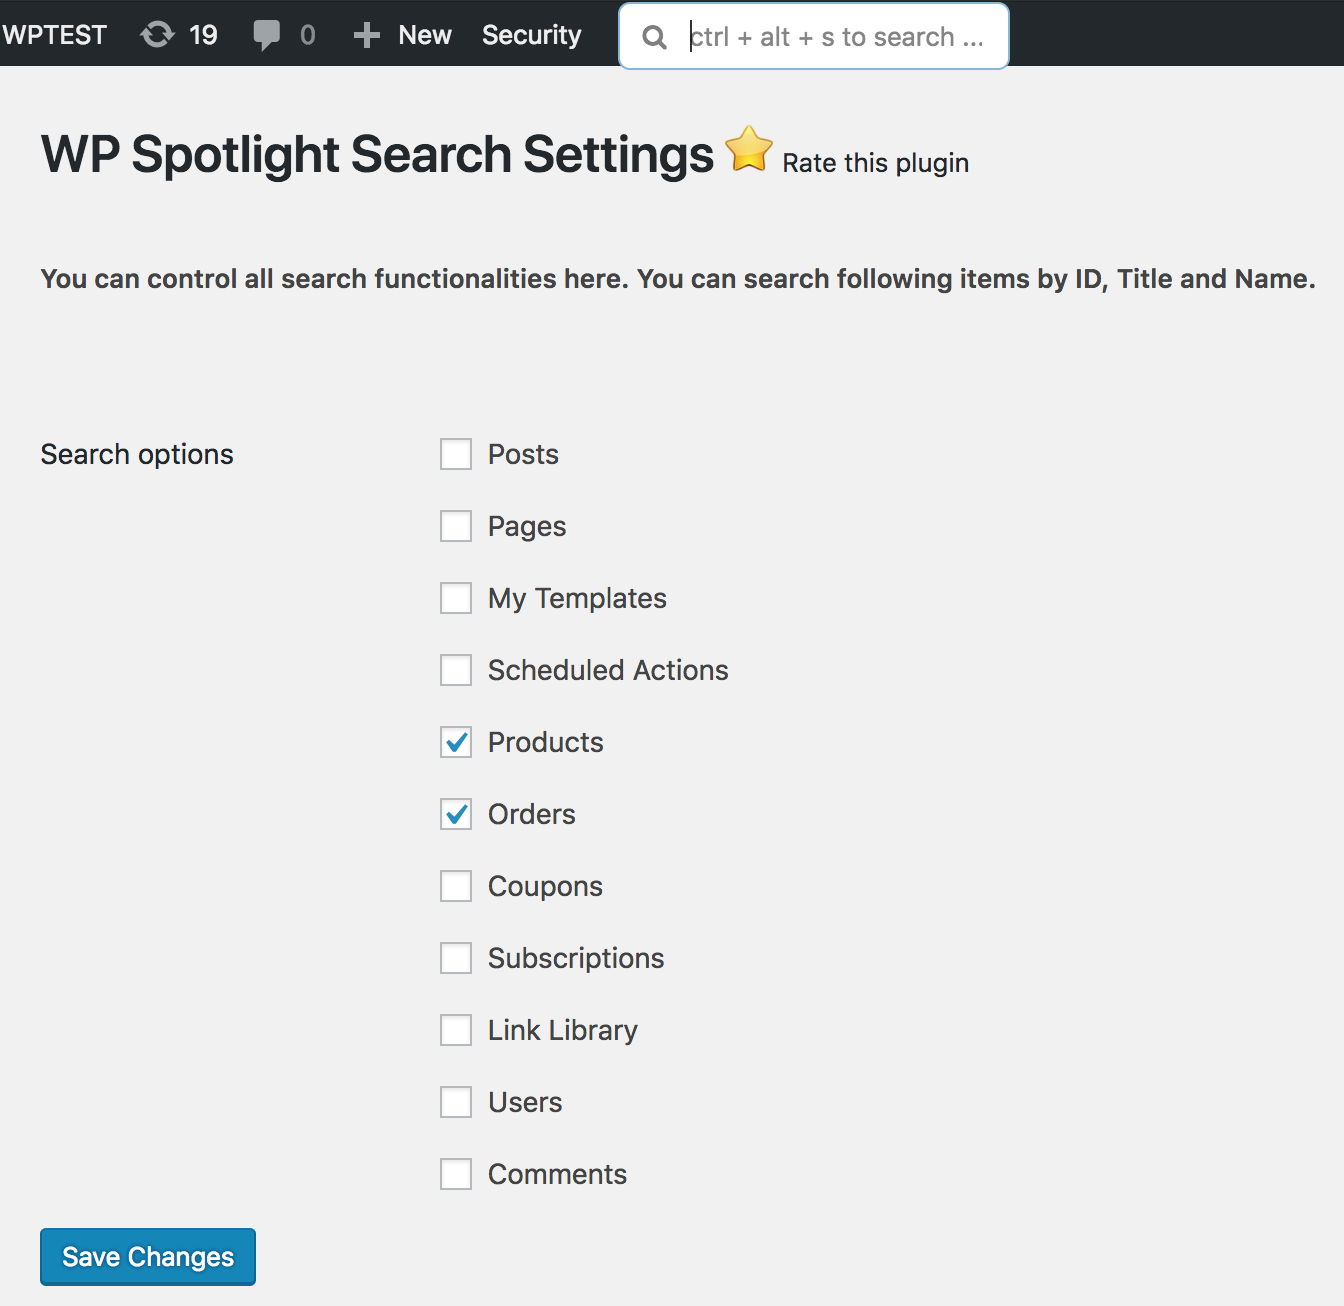 WP Spotlight Search Settings